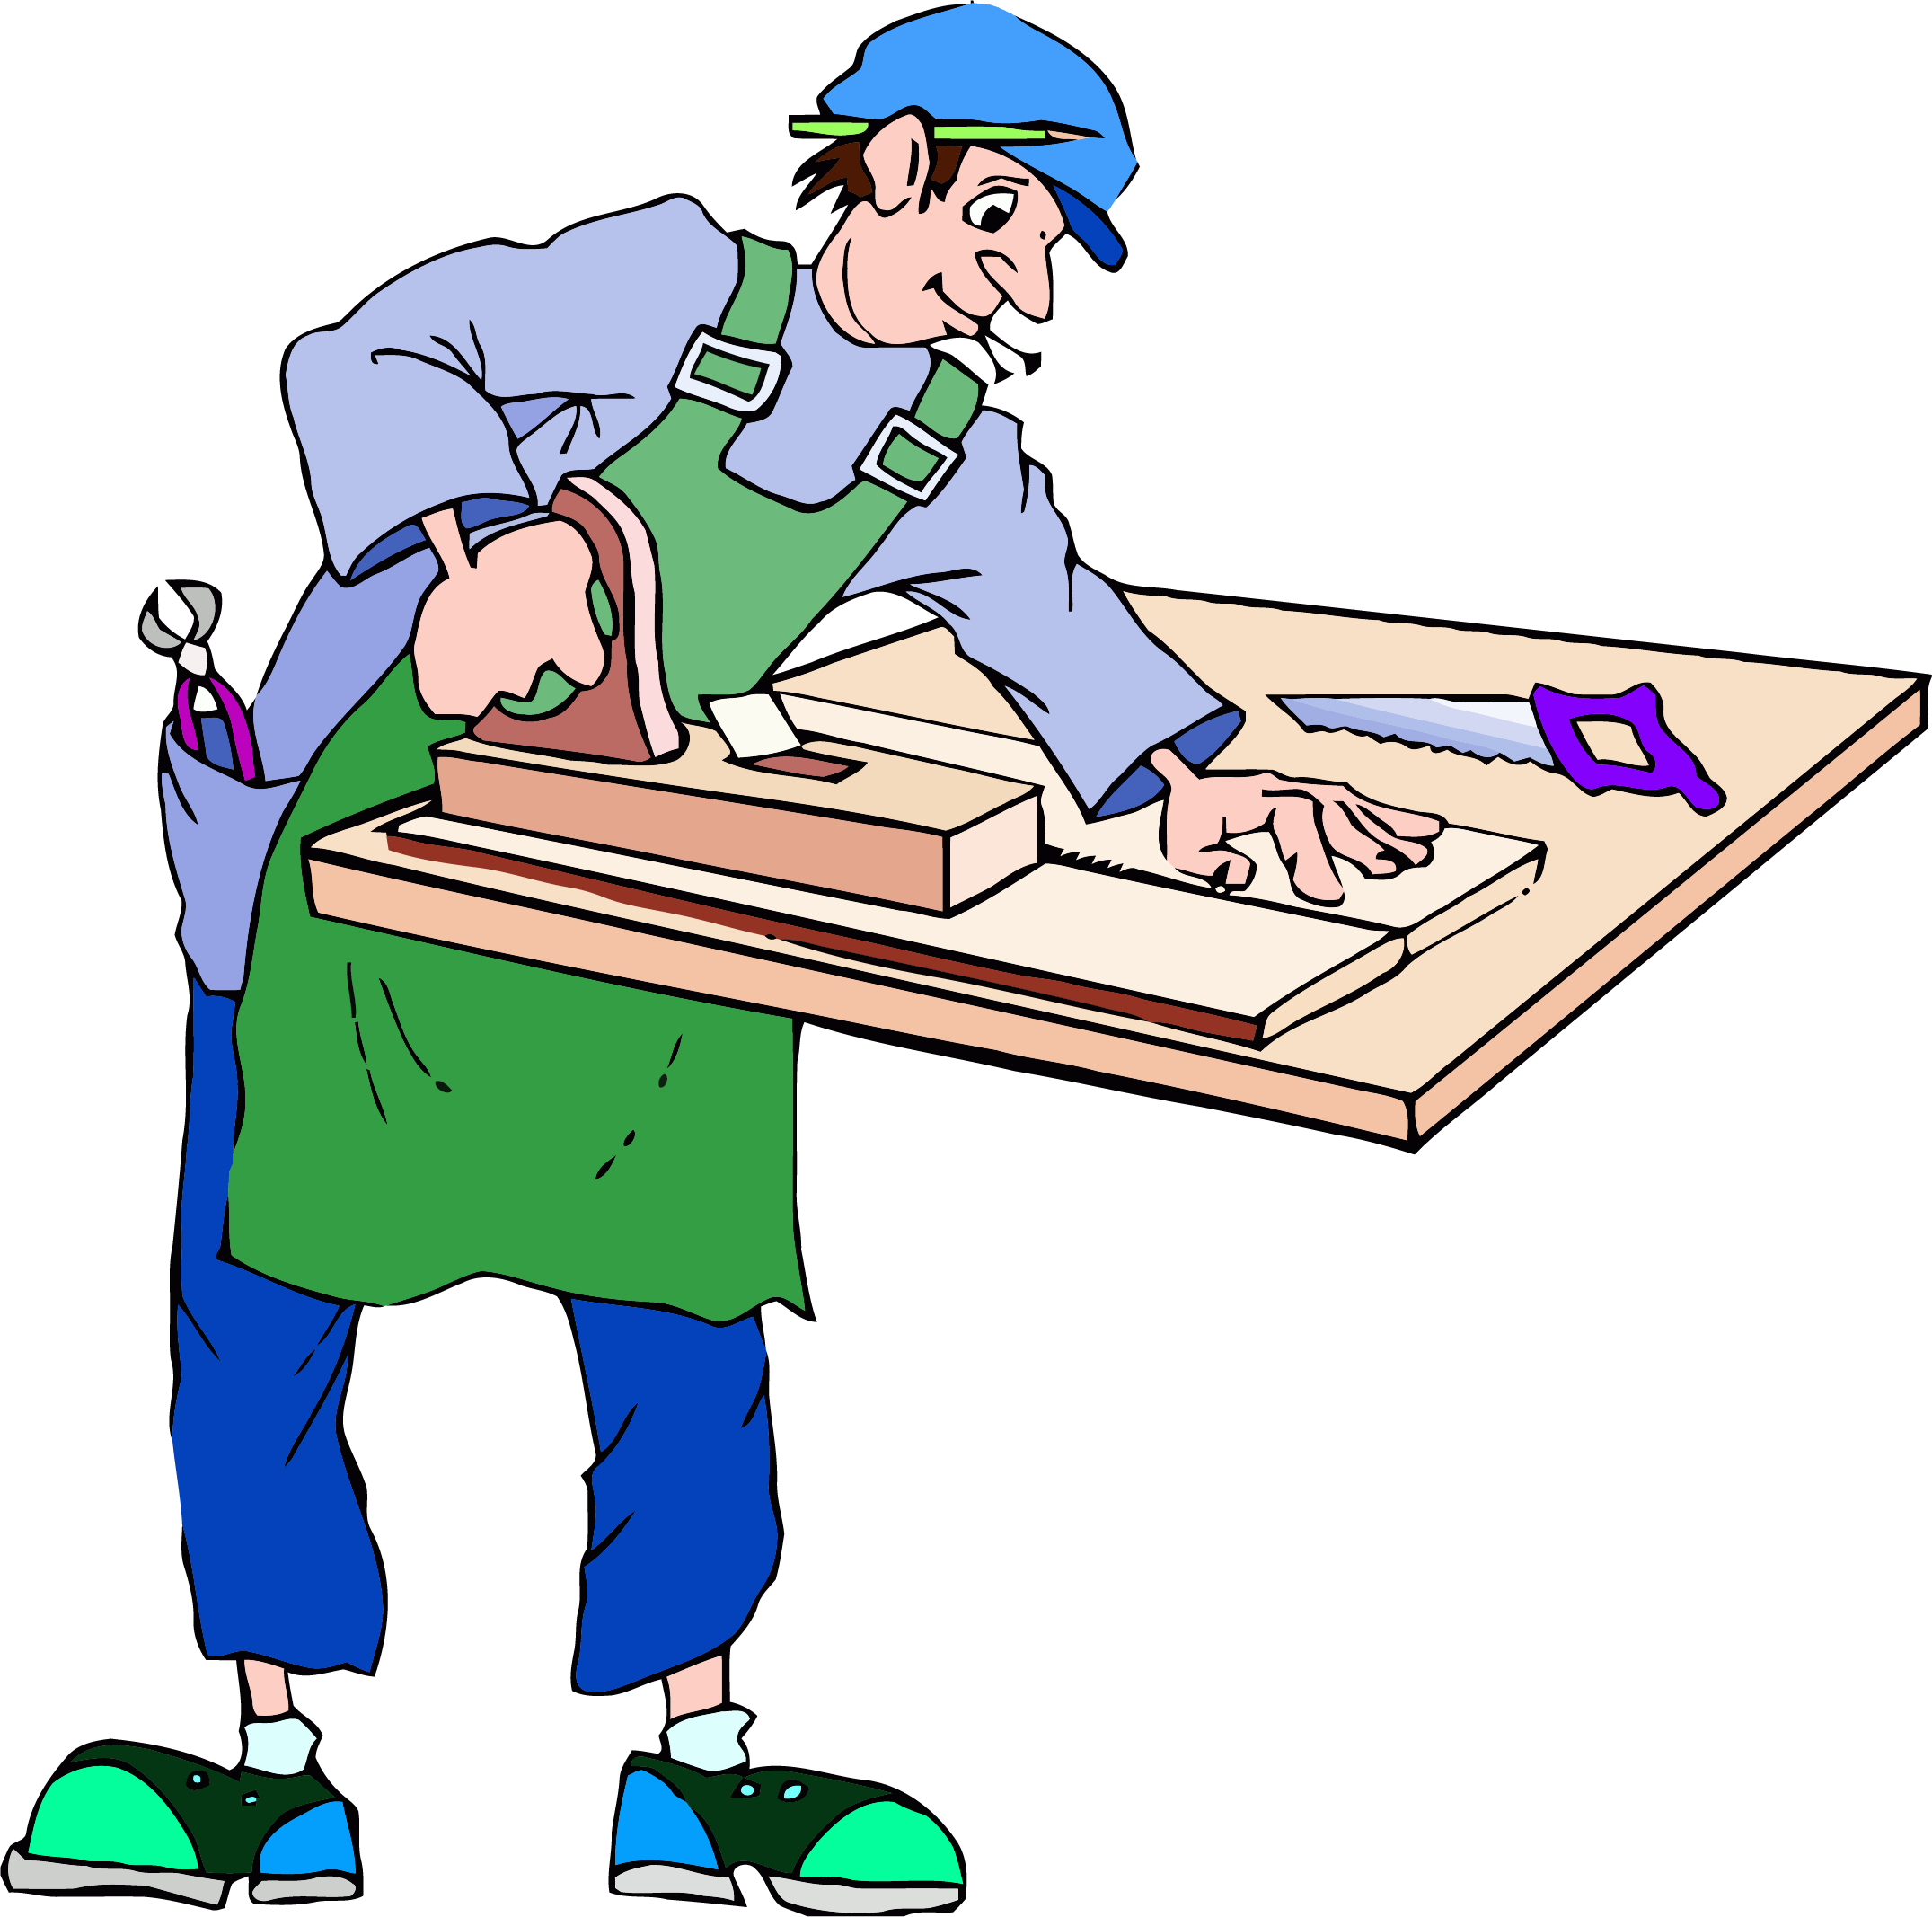 clipart free Carpenter clipart. Rasp png clipartly comclipartly.